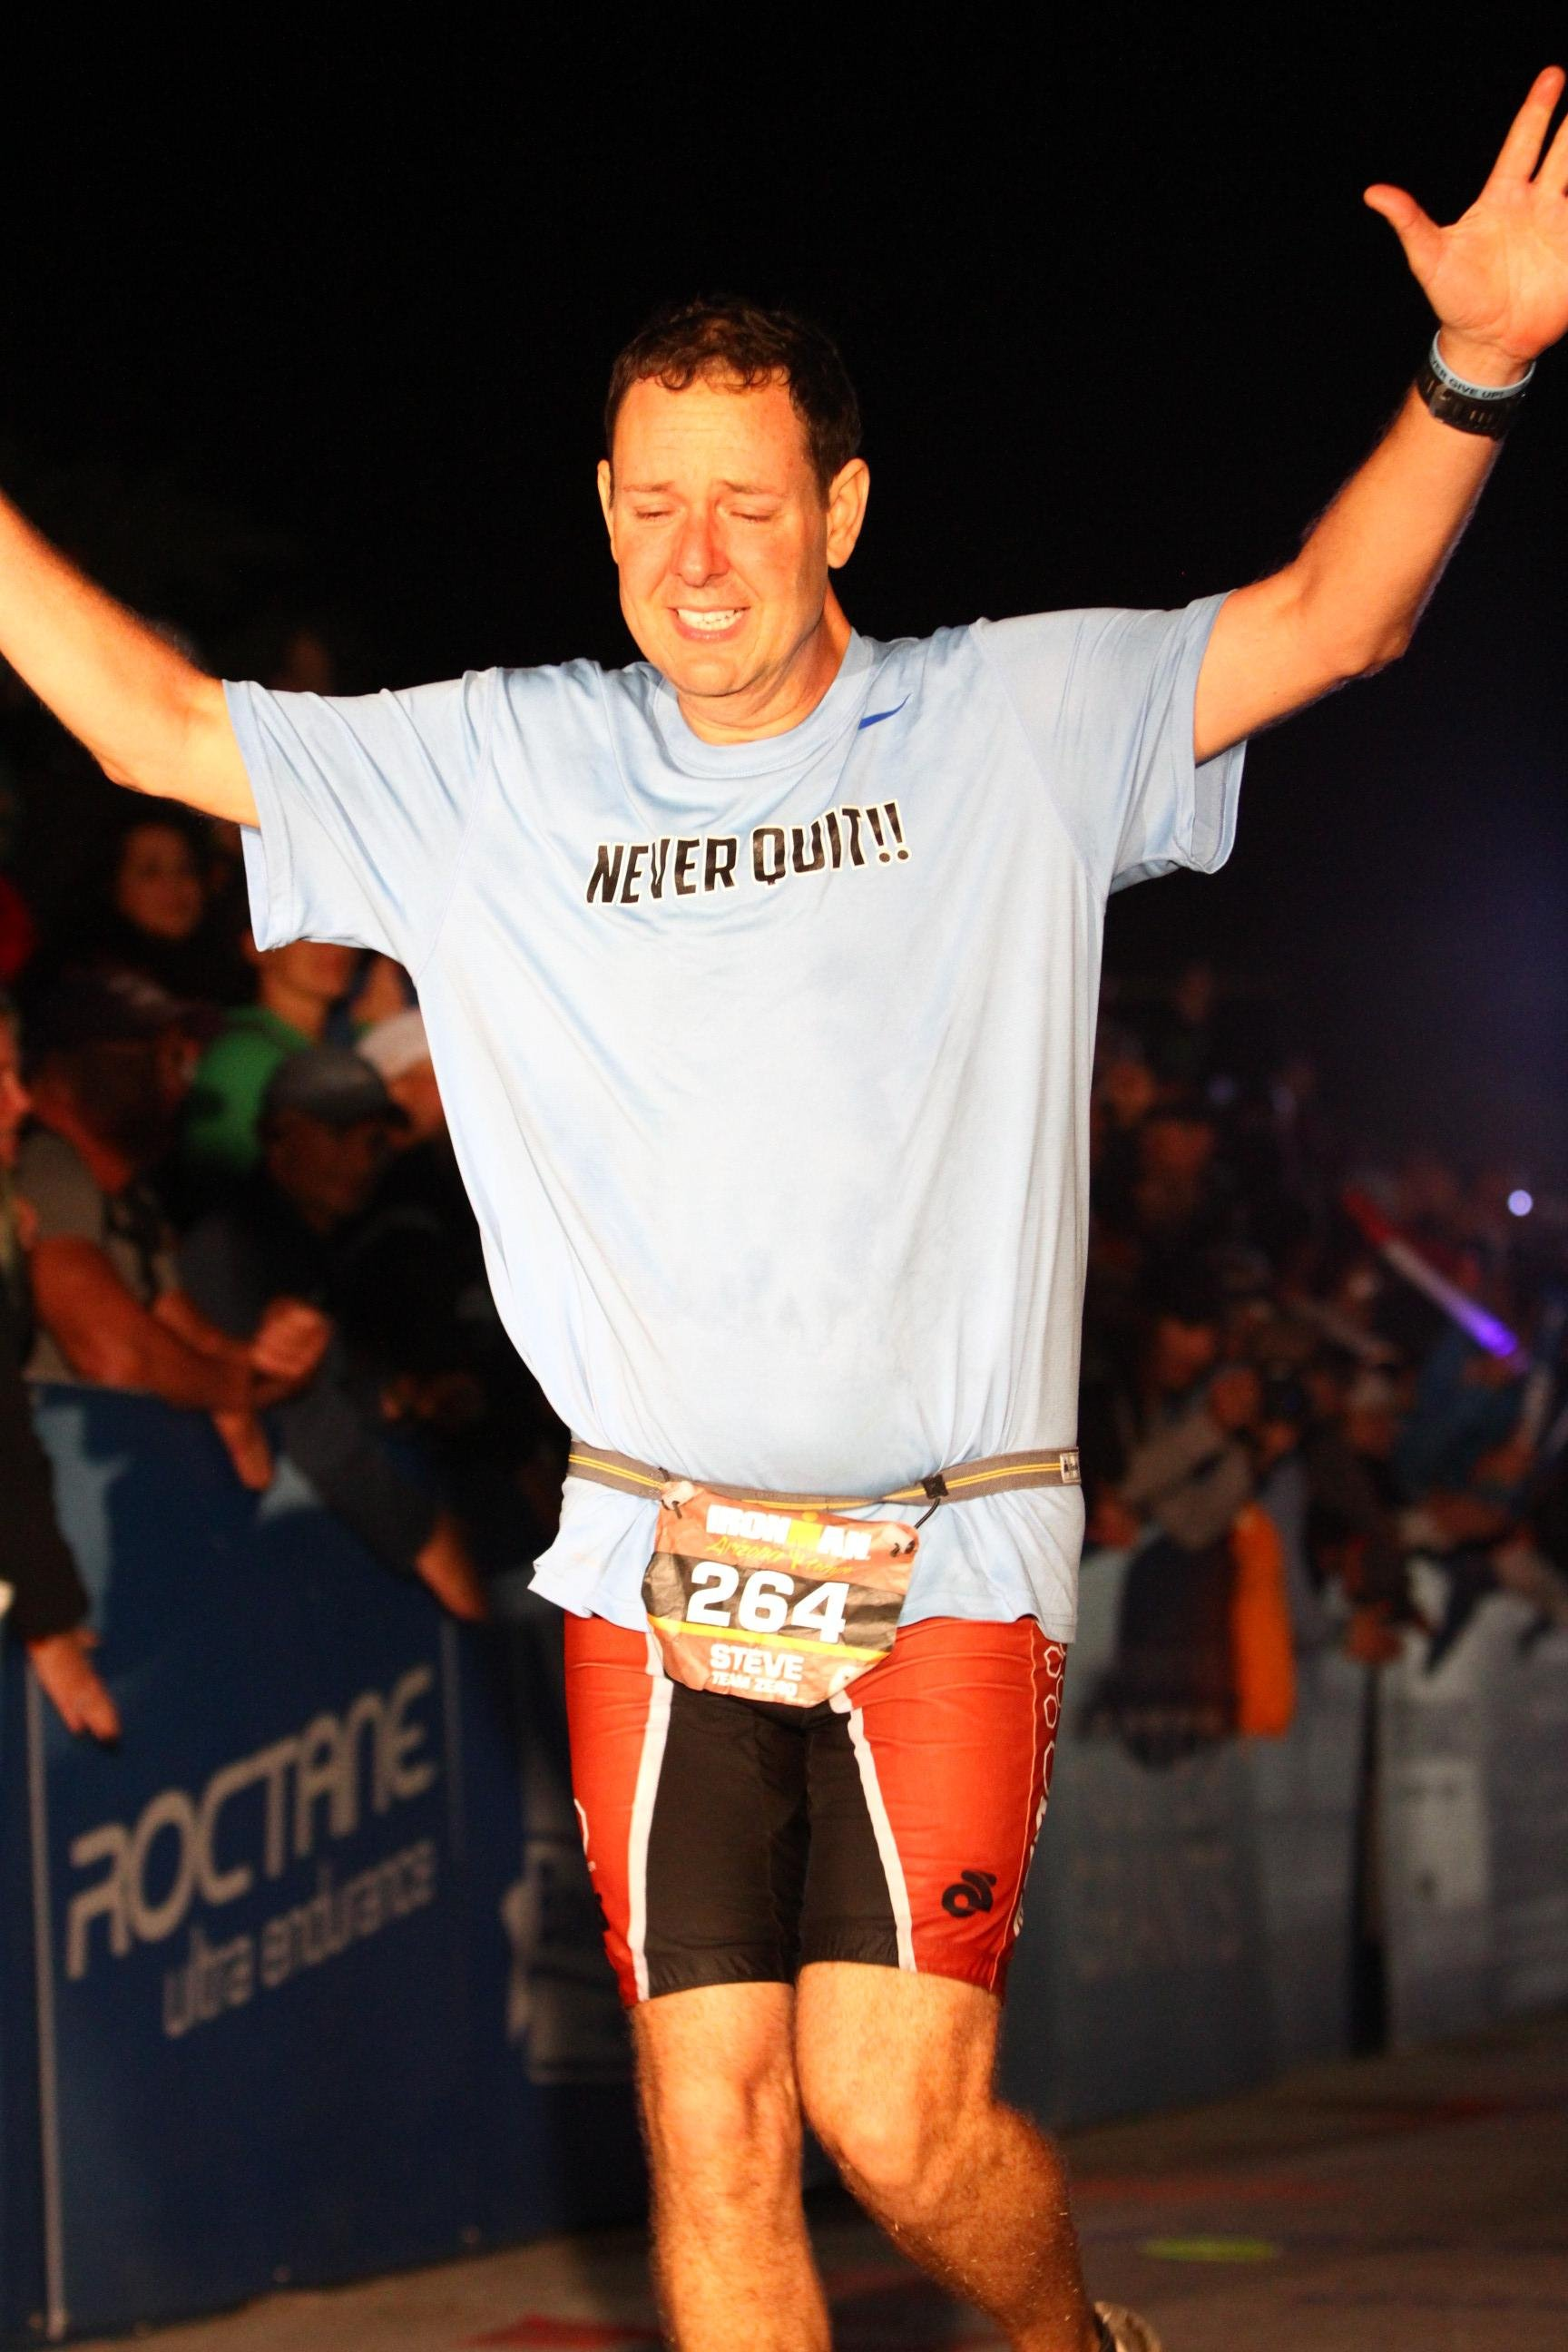 Cooper competing in Ironman while undergoing radiation therapy